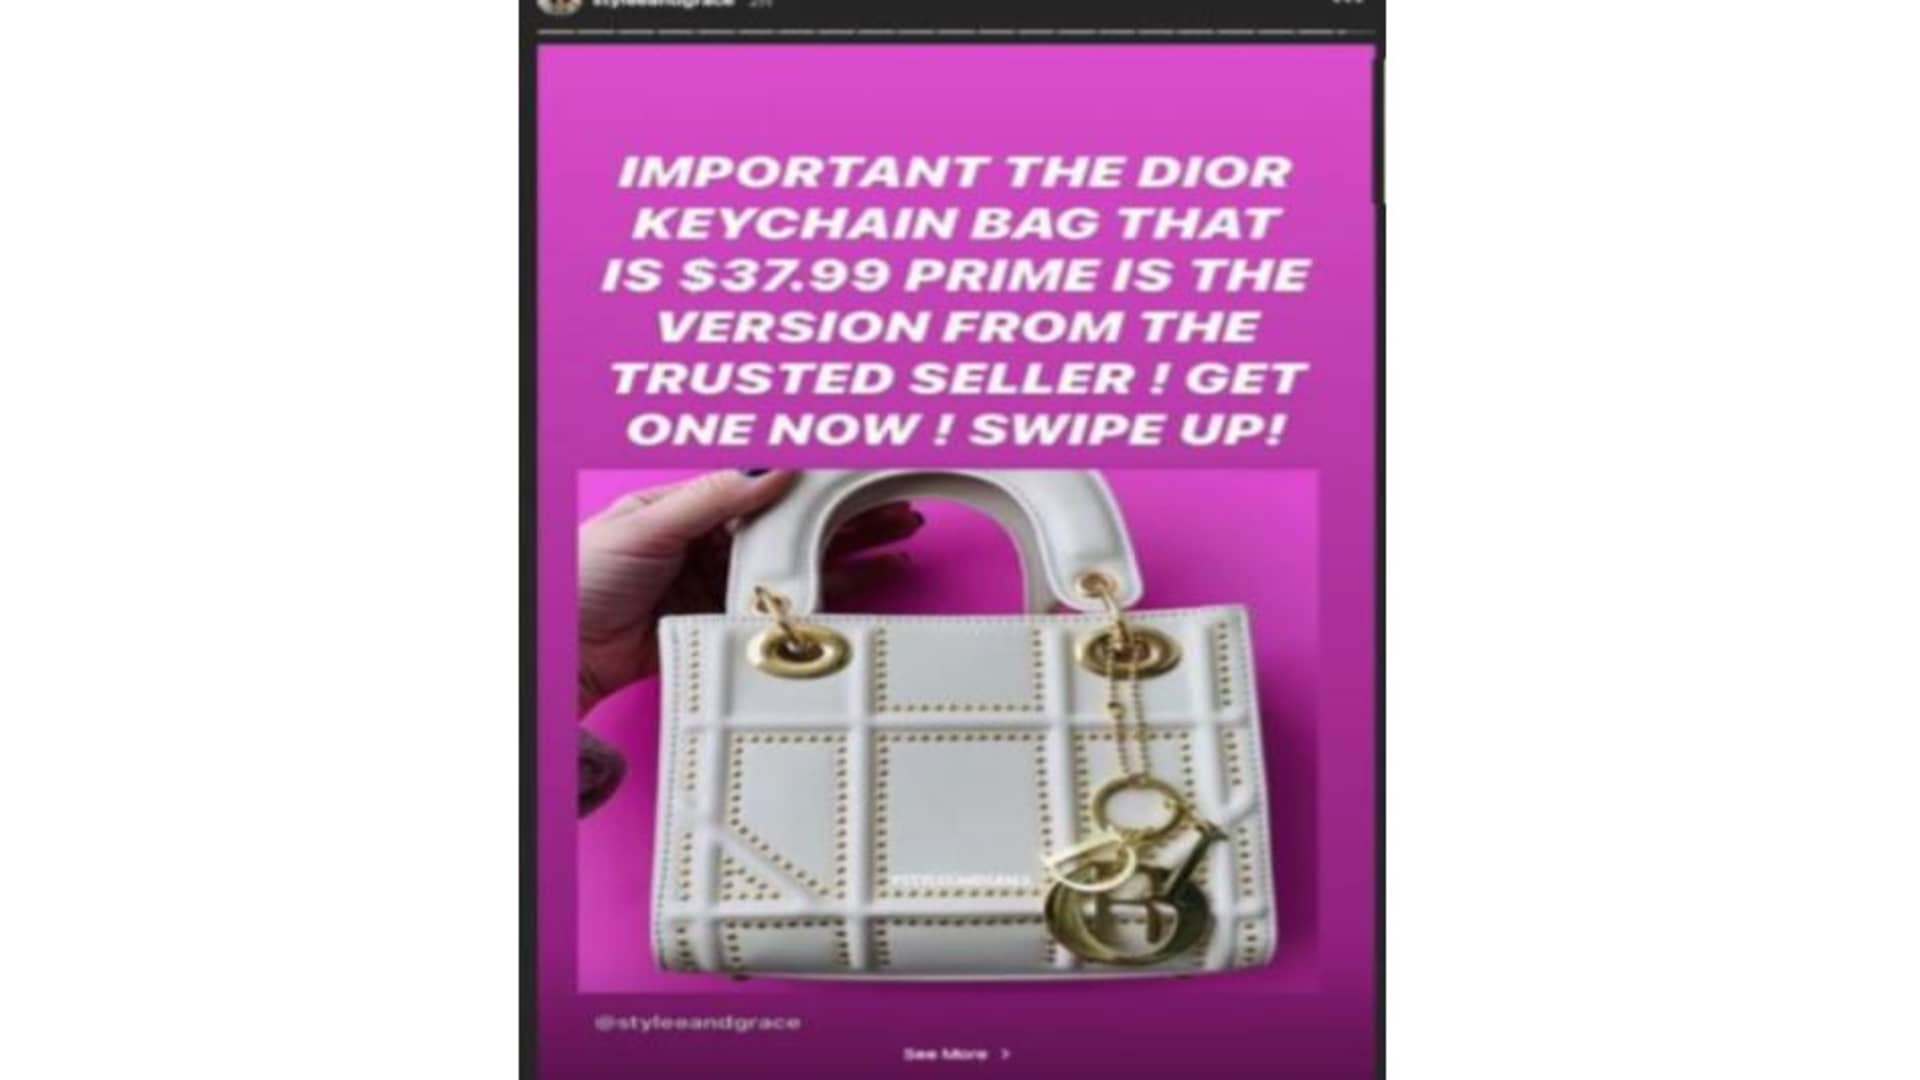 An example of one of Fitzpatrick's Instagram posts allegedly advertising a counterfeit Dior bag.